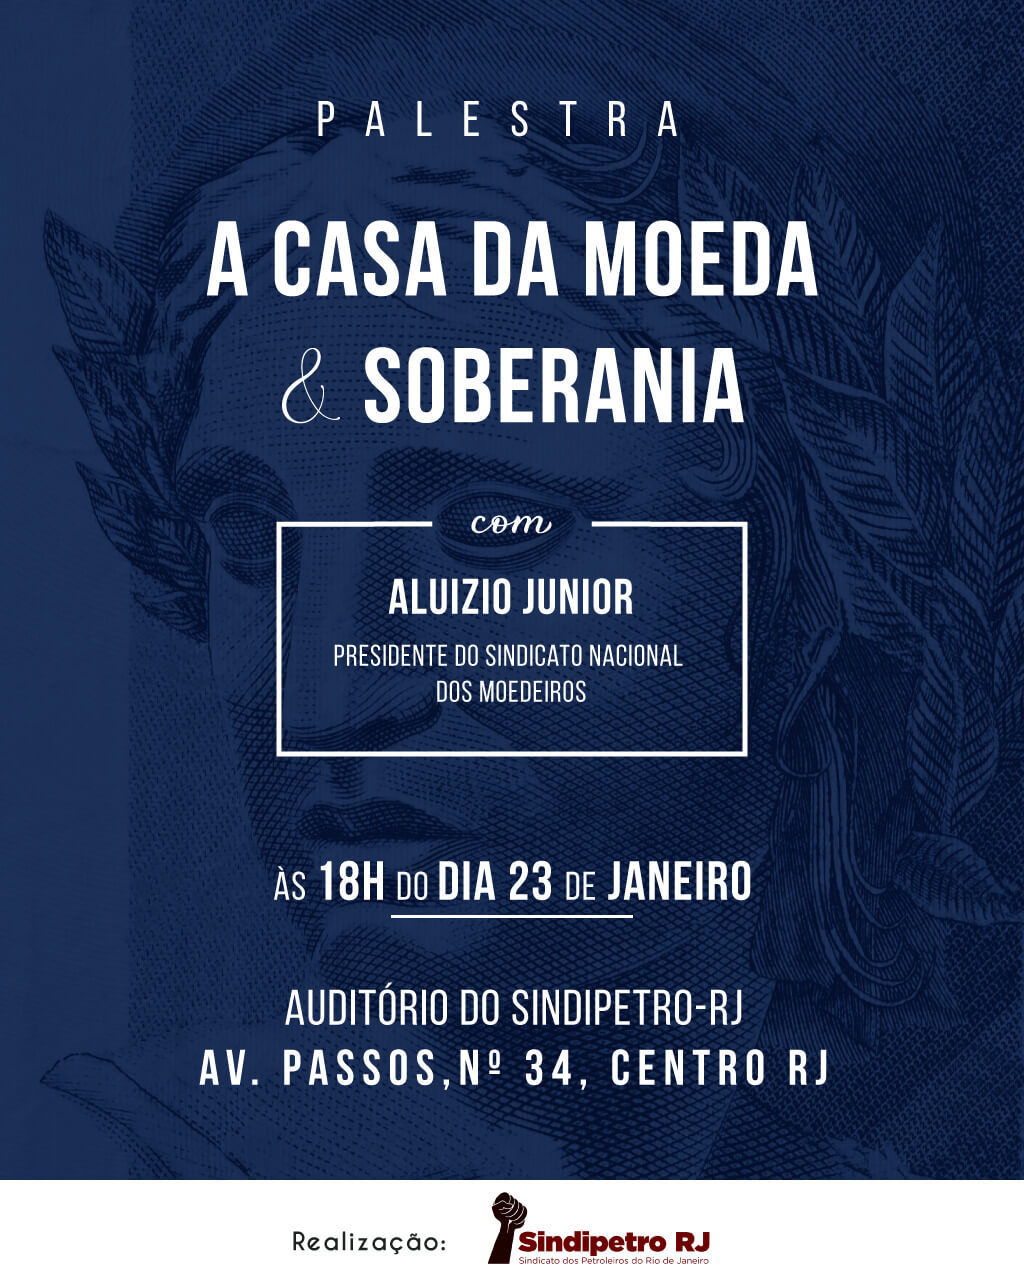 Palestra – A Casa da Moeda & Soberania WhatsApp Image 2019 01 14 at 14  A10 WhatsApp Image 2019 01 14 at 14